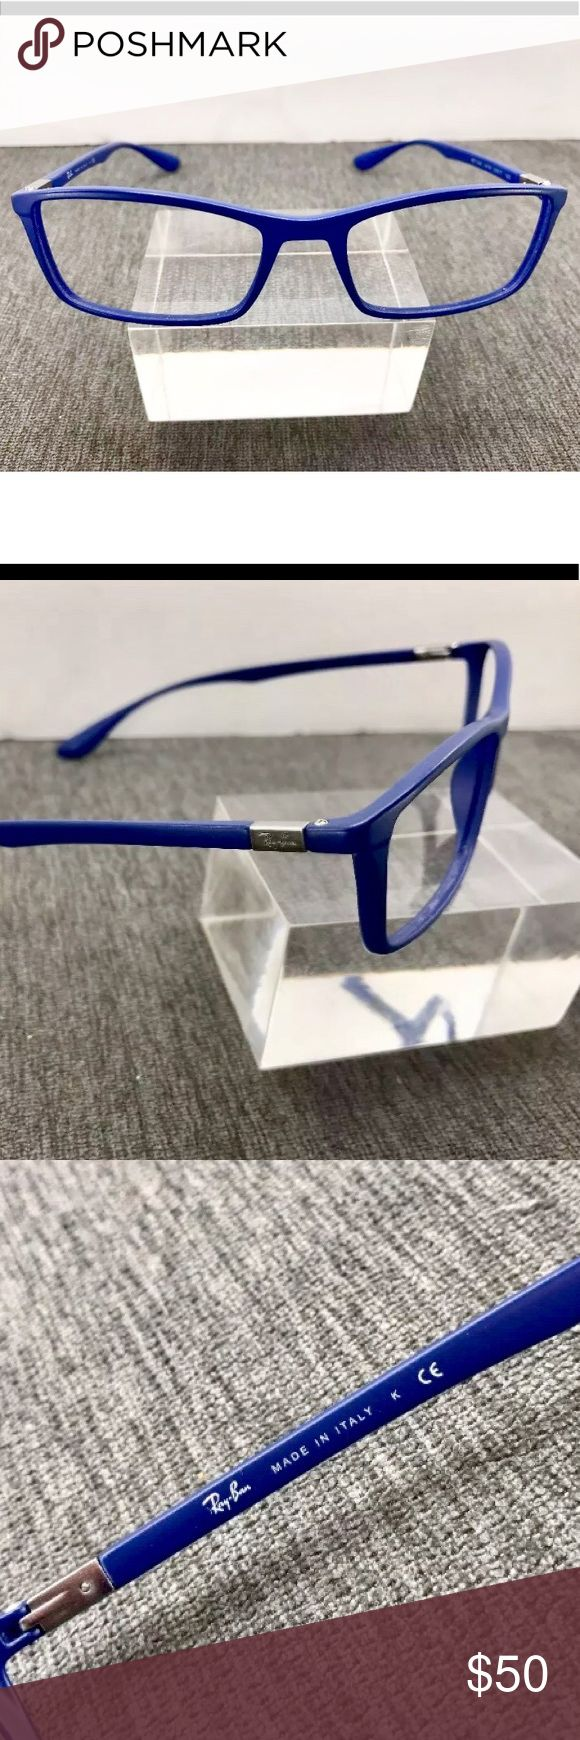 Blue Ray Ban Eyeglass Frames Authentic Ray Ban LiteRay RB7048 5439. Measurements: 53-17-145. Made in Italy. Great condition. Add your own prescription. Ray-Ban Accessories Glasses